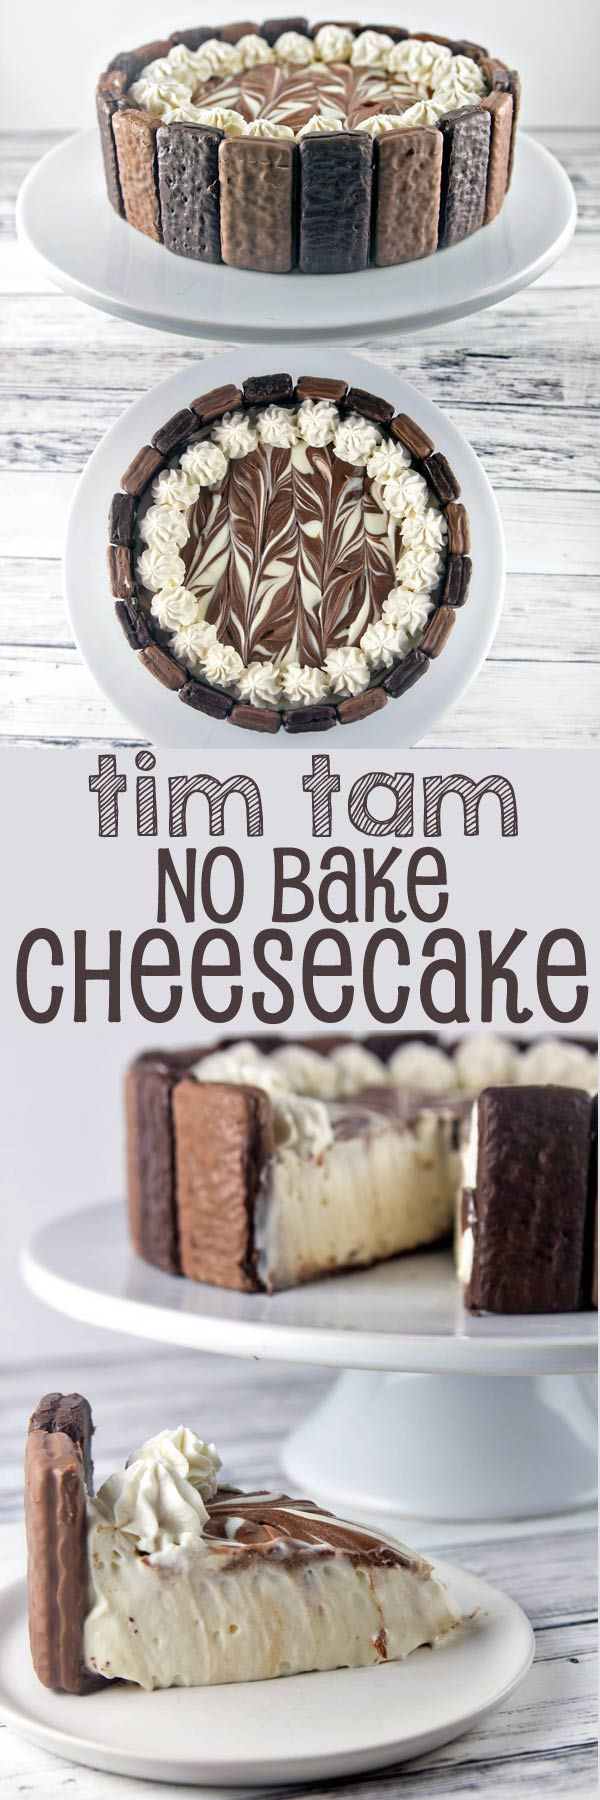 Tim Tam No Bake Cheesecake: the perfect quick and easy holiday entertaining dessert. Crunchy Tim Tams paired with a light, smooth no bake cheesecake filling, and a pure chocolate crust. Heavenly! {Bunsen Burner Bakery} #SpreadCheer #ad